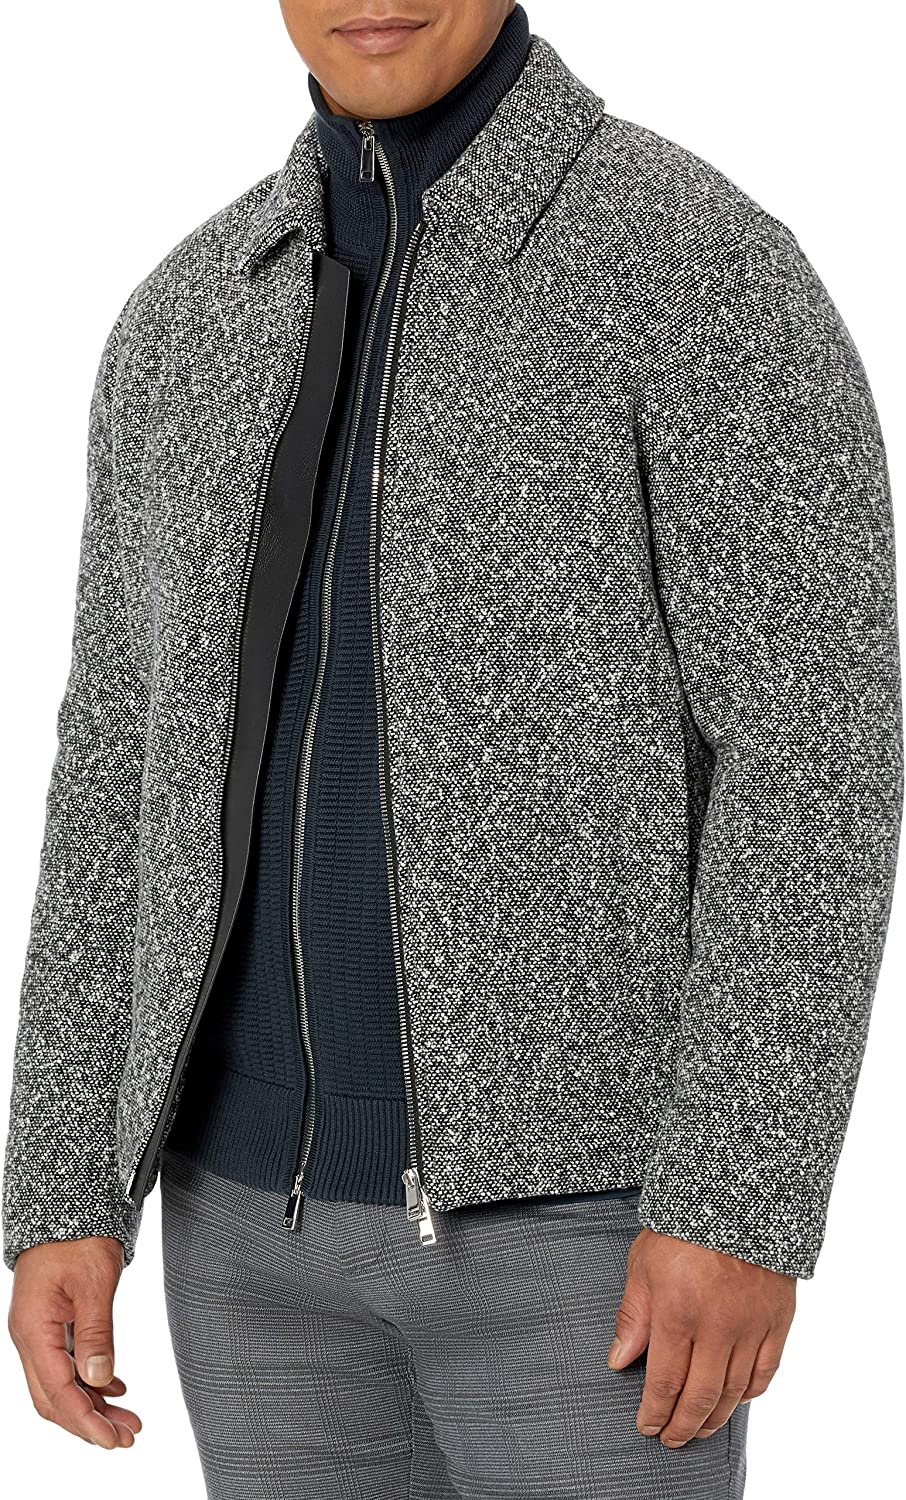 Theory Mens,Boucle Speckled Bomber,Ricky